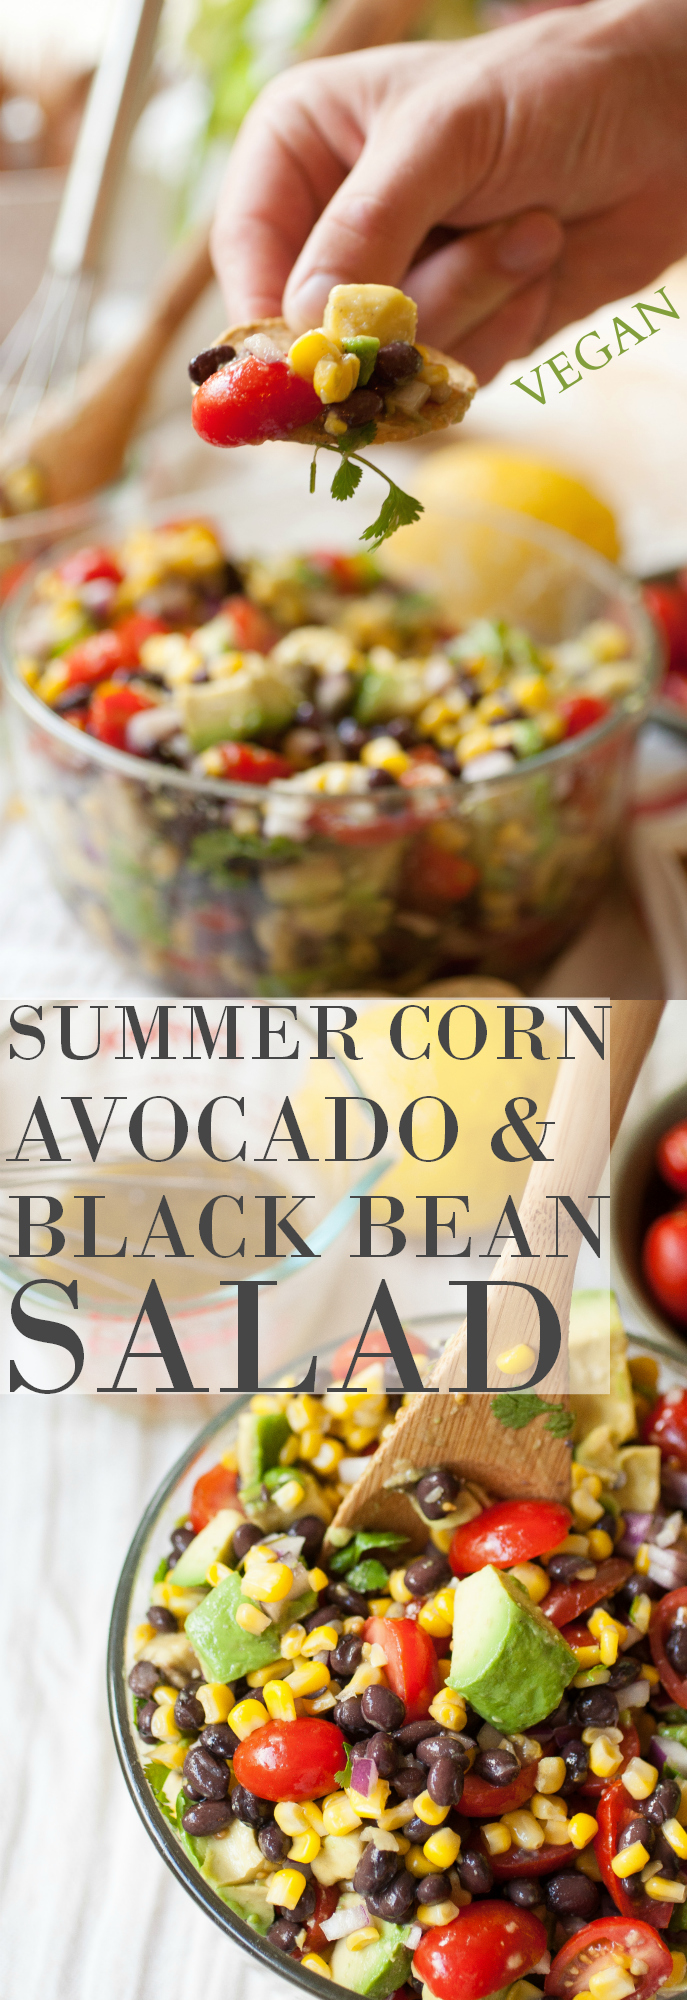 Produce On Parade - Summer Corn, Avocado & Black Bean Salad - This salad is great all on it's on, as a sort of dip with chips, or even in a pita! Fresh and vibrant with creamy avocado, sweet corn, tart cherry tomatoes, black beans, and cilantro all in a tangy lemon dressing, it's an excellent dish to bring to a gathering! Share with your friends and family and let them see how awesome and wholesome vegan food can be.